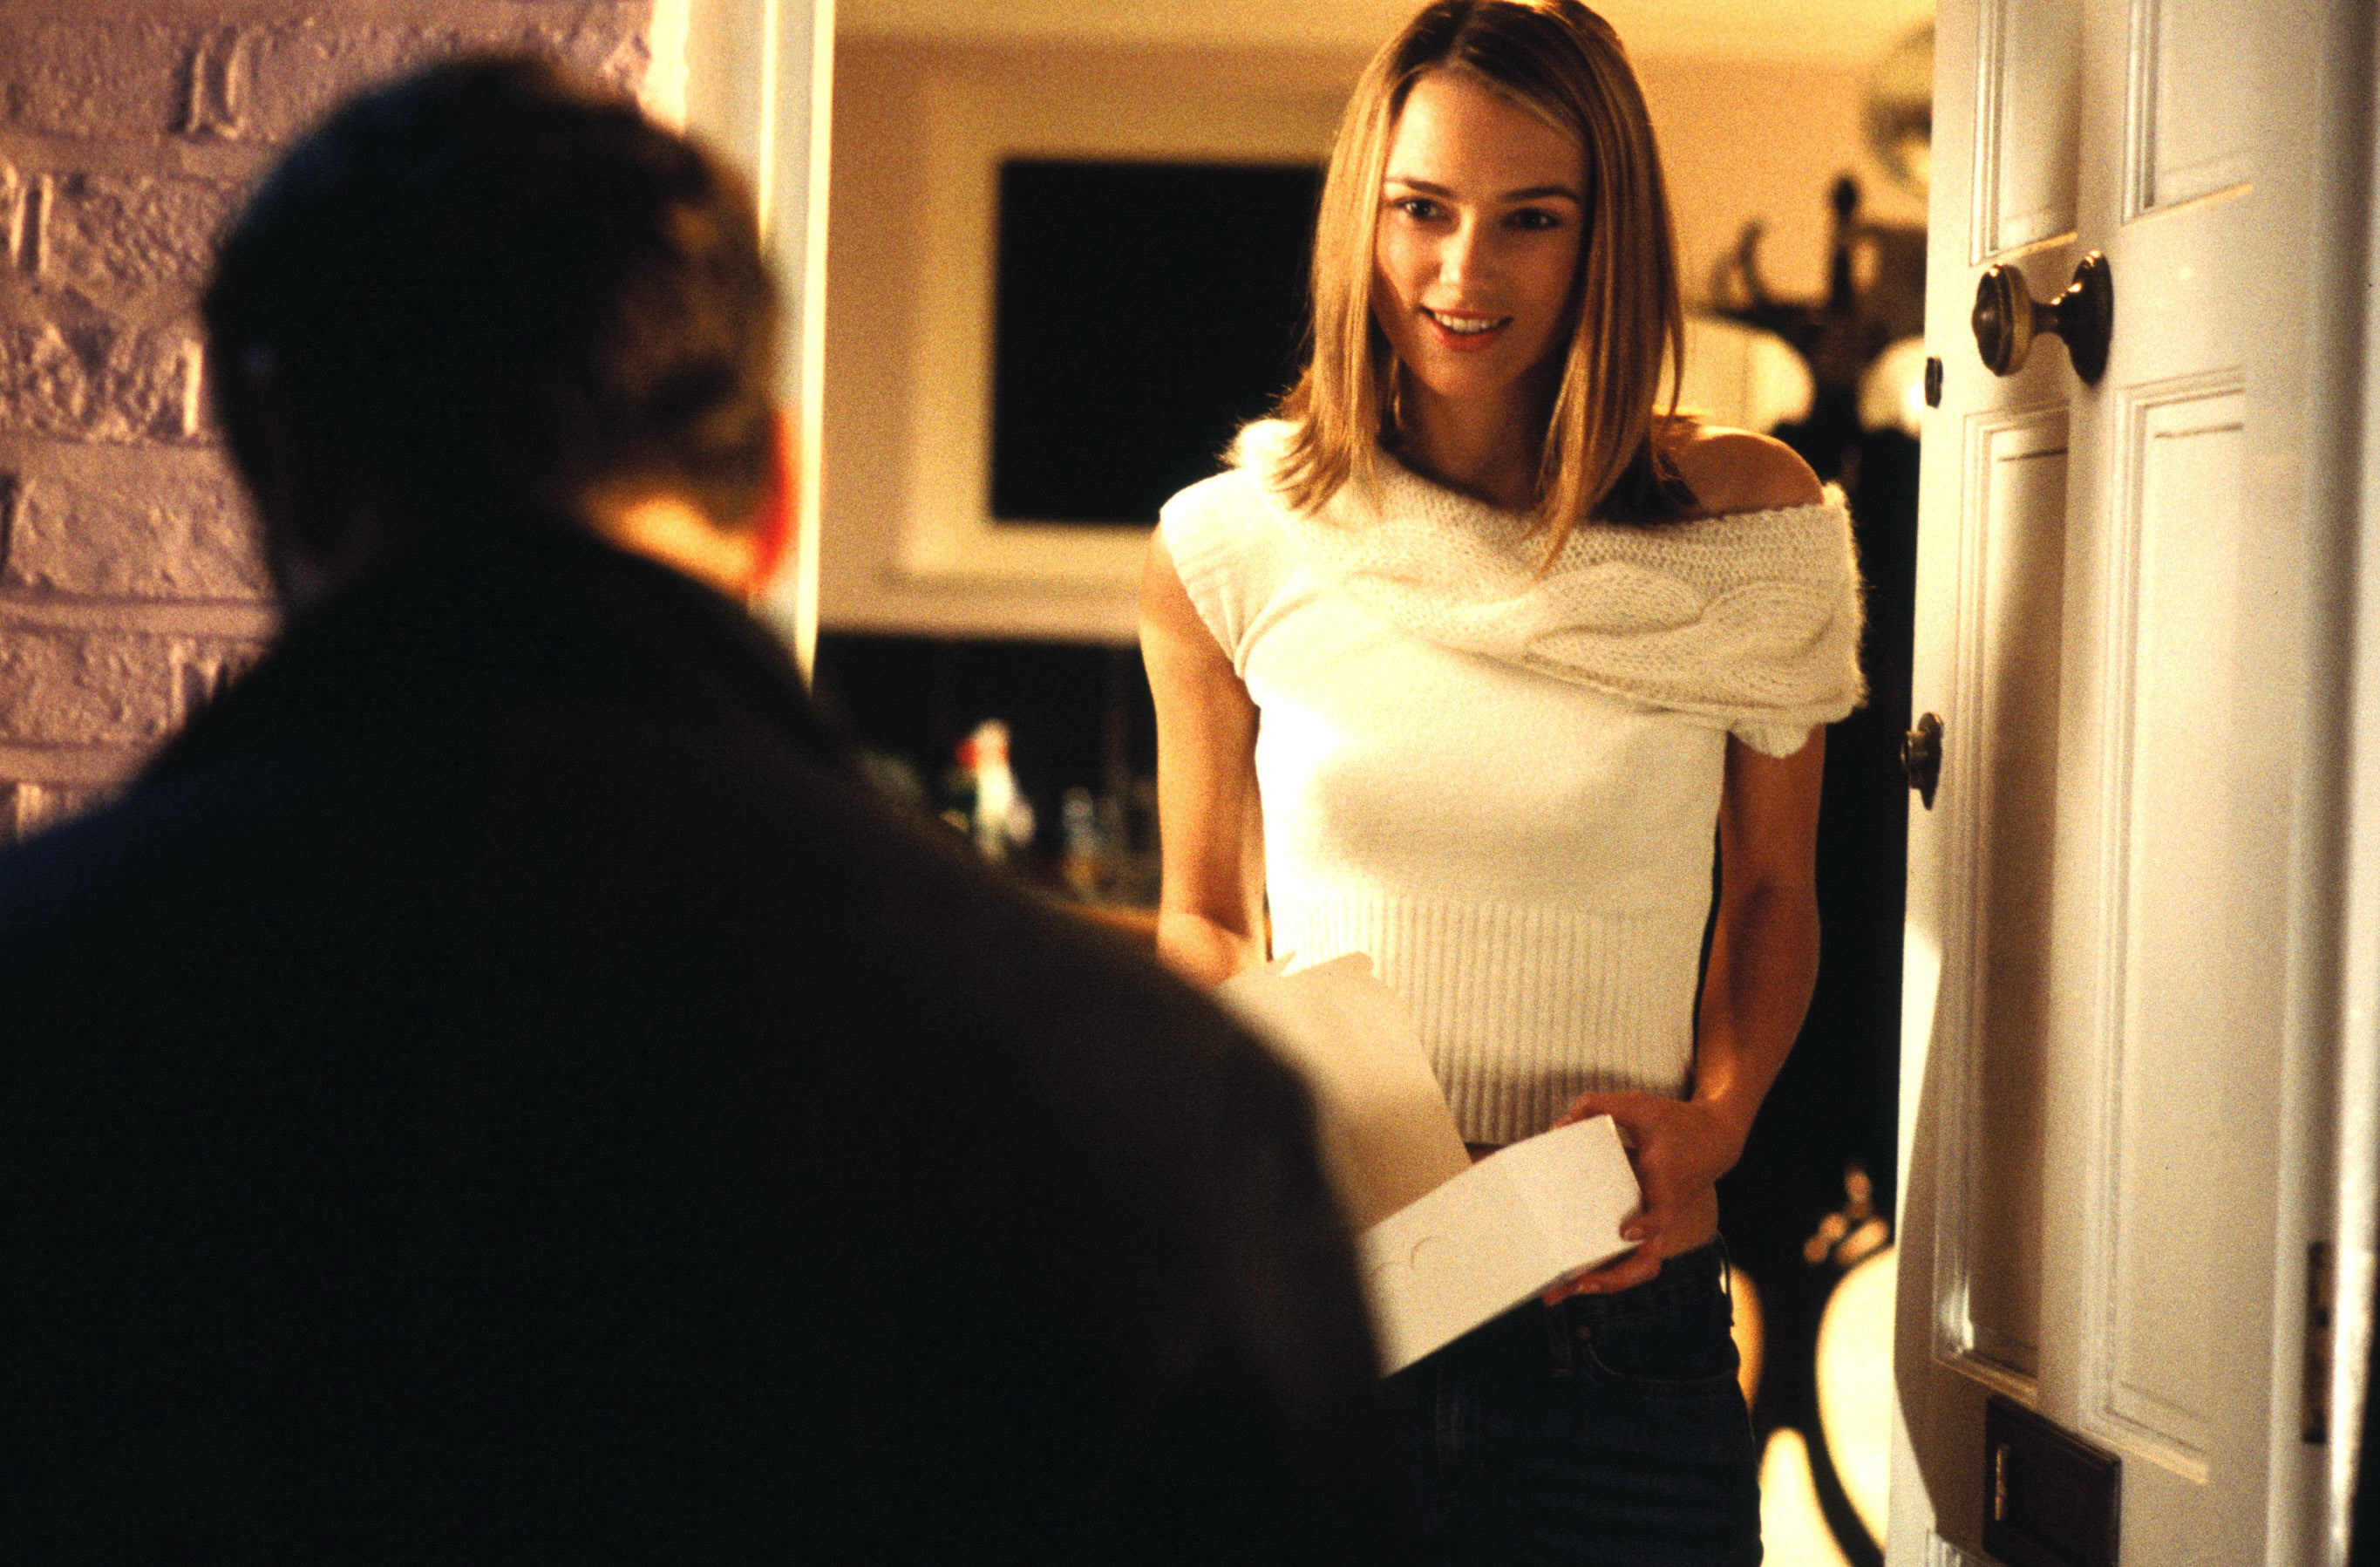 """Keira Knightley and Andrew Lincoln in """"Love Actually"""" during the iconic note card scene"""